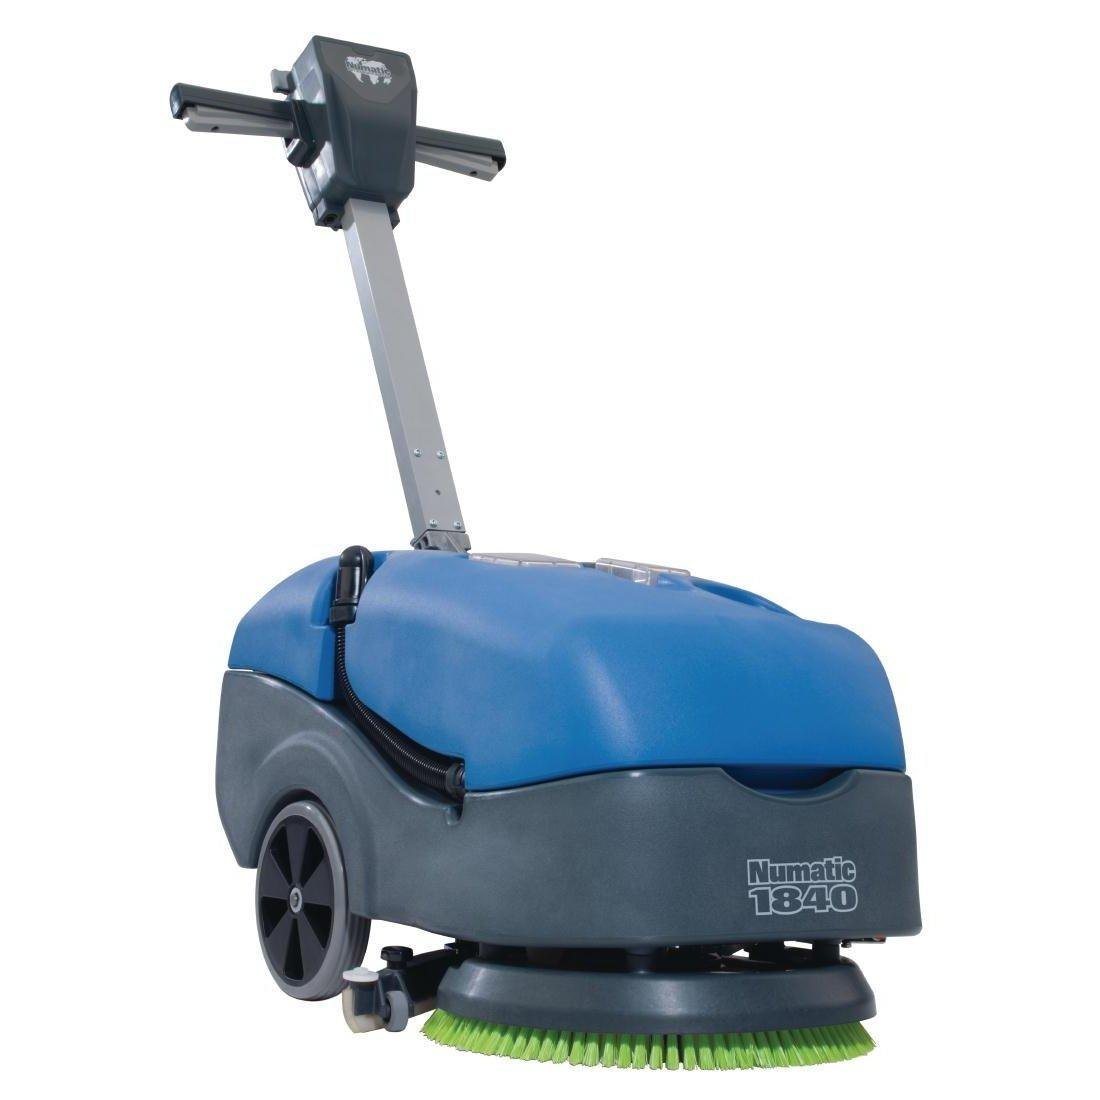 Numatic Battery Scrubber Drier TTB1840 - GH887